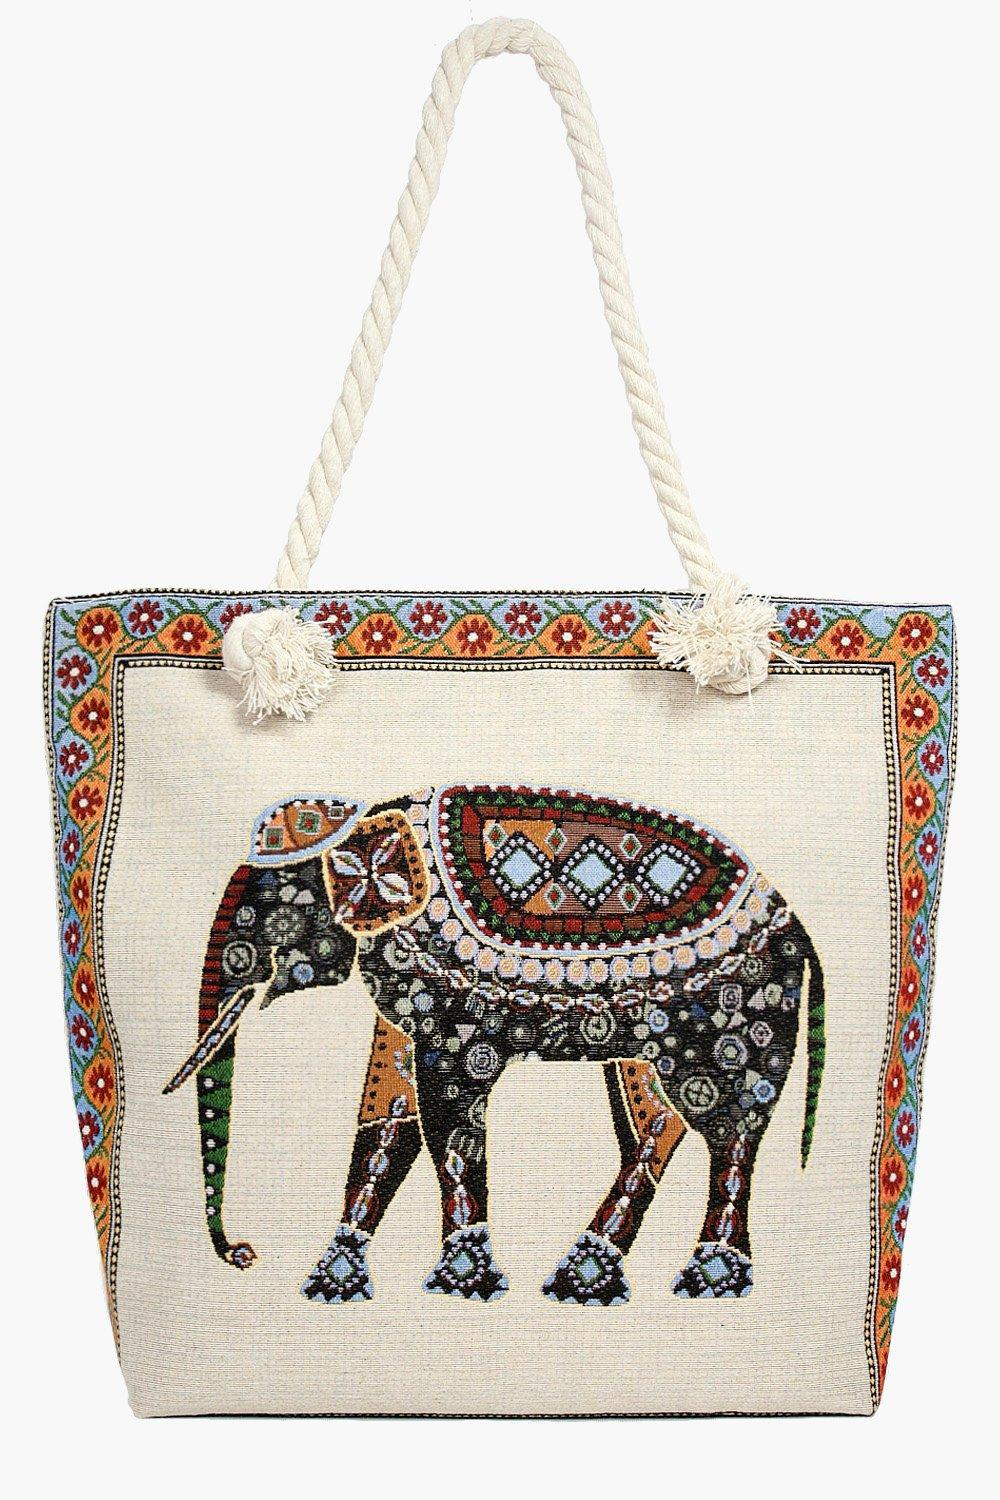 Elephant Print Beach Bag - multi - Maisy Elephant